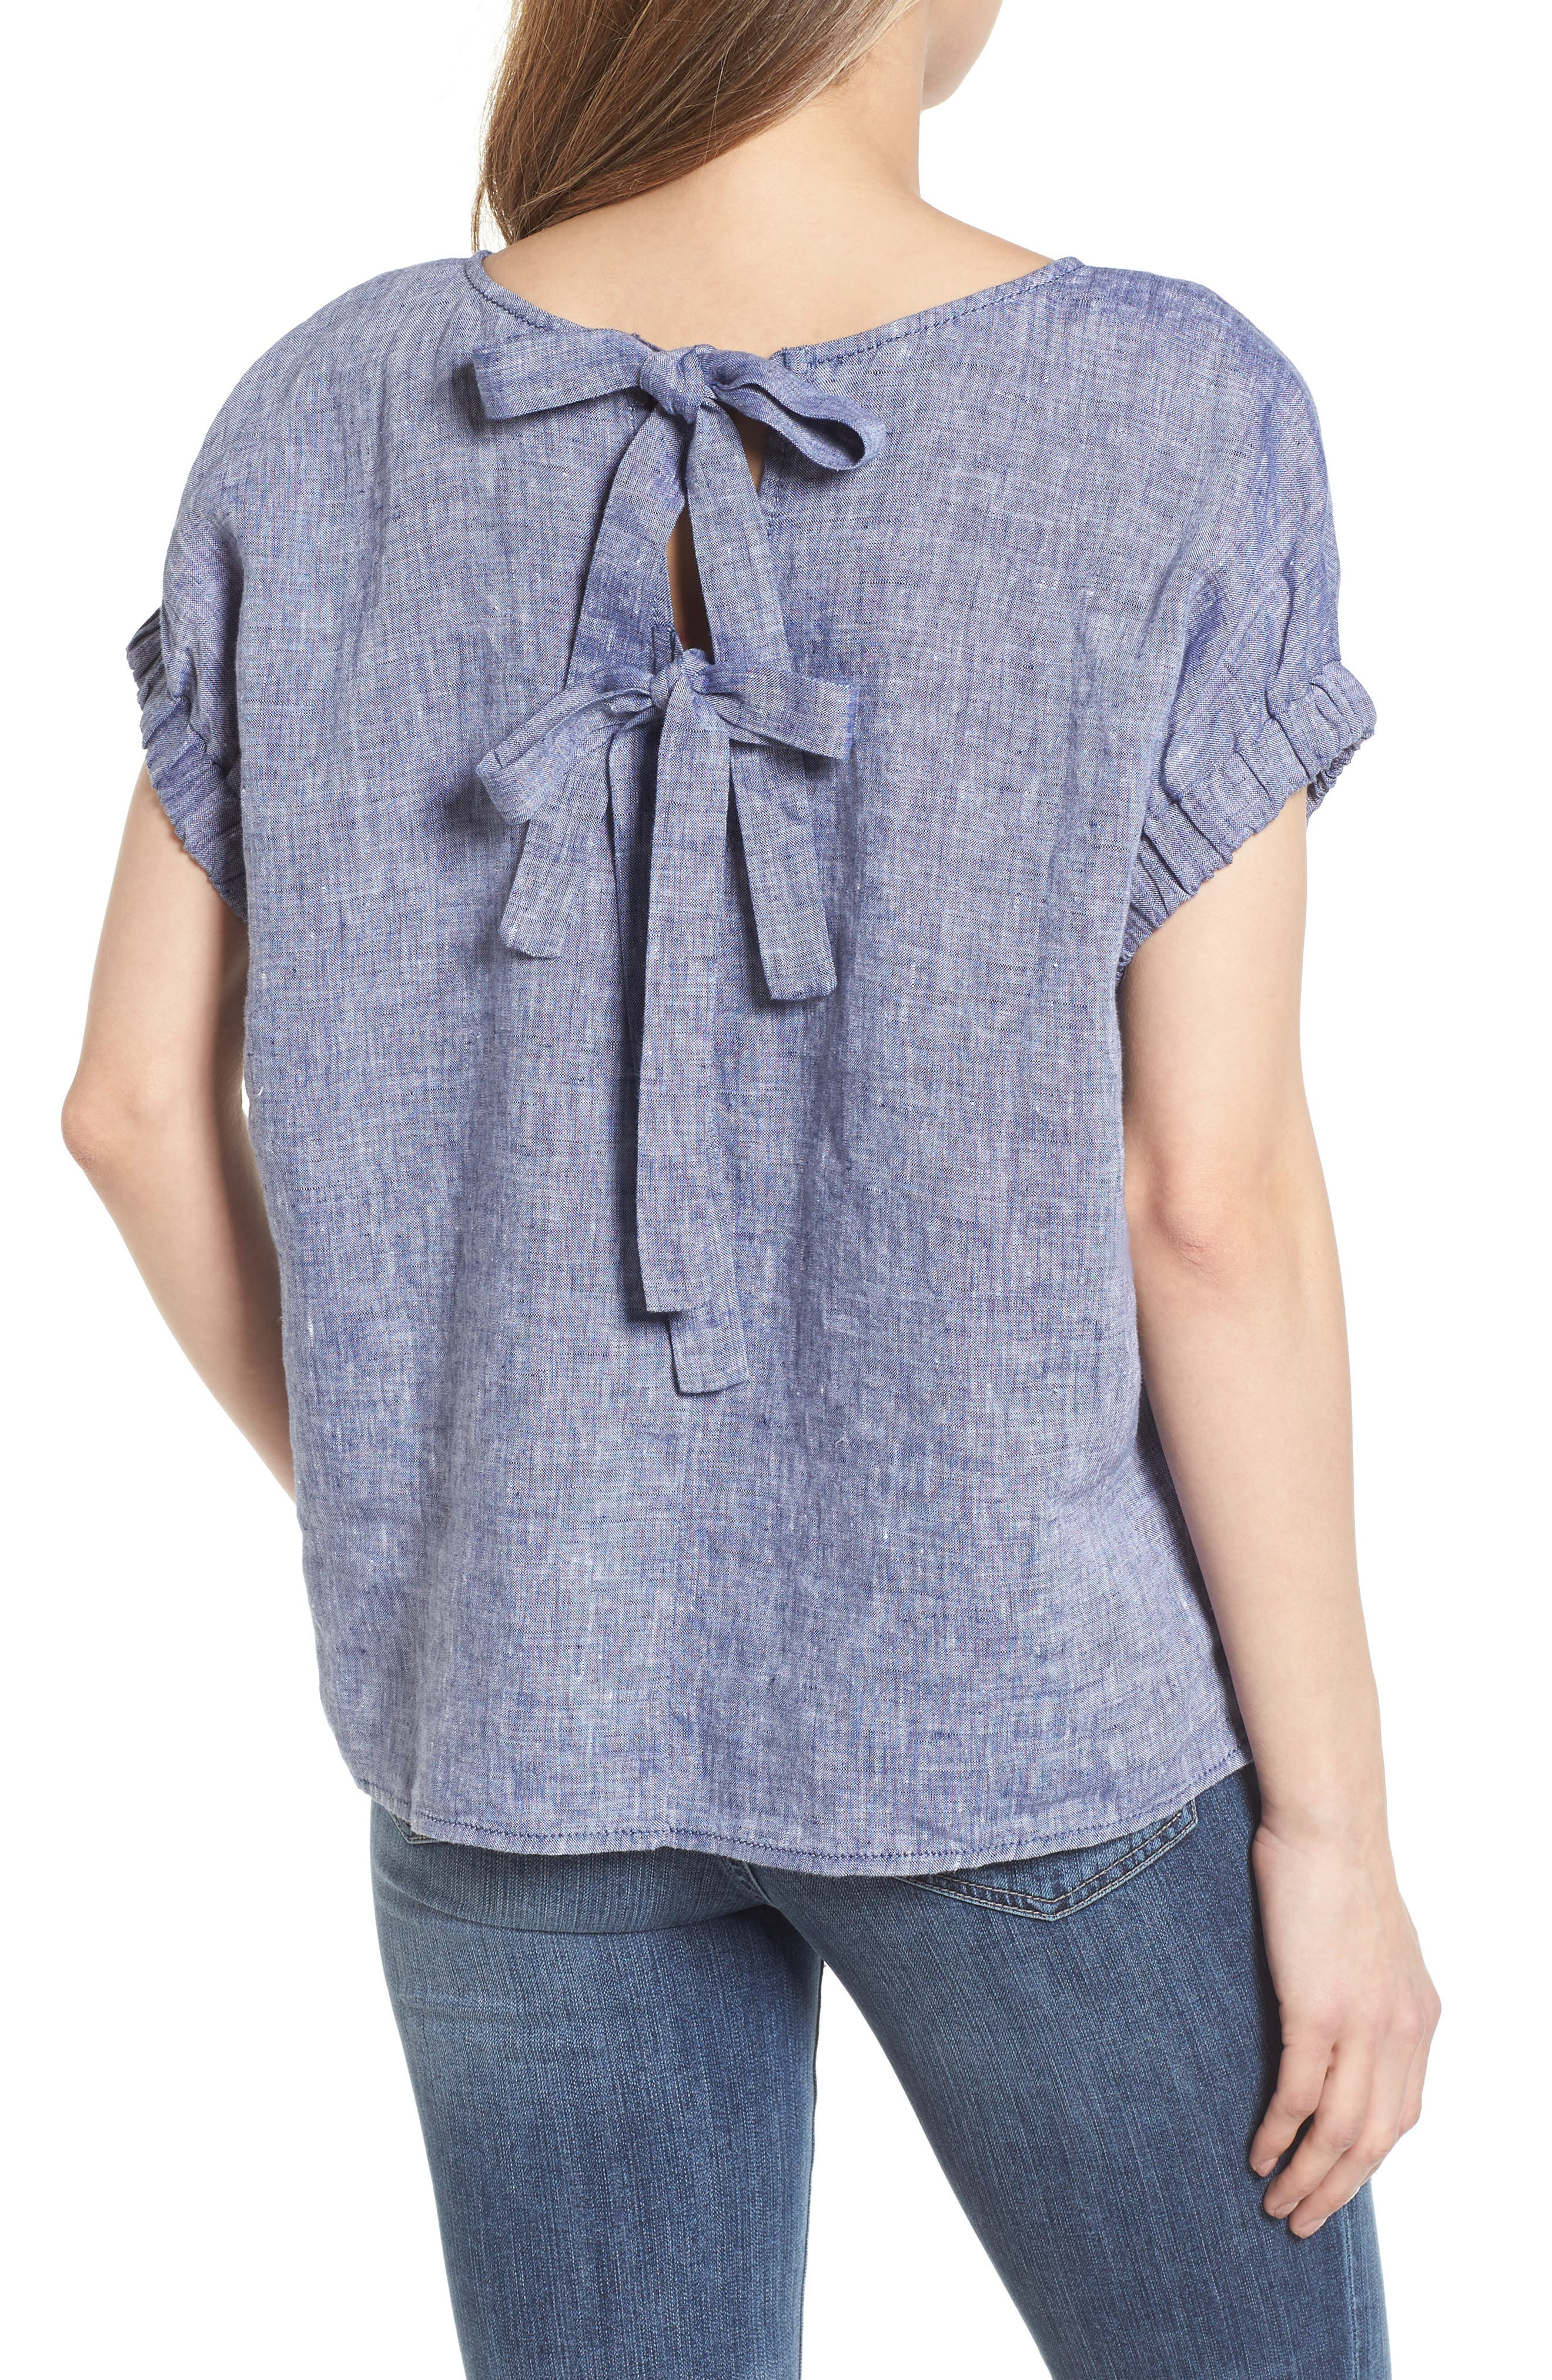 Linen Tie Back Blouse,                             Alternate thumbnail 2, color,                             Navy Crossdye